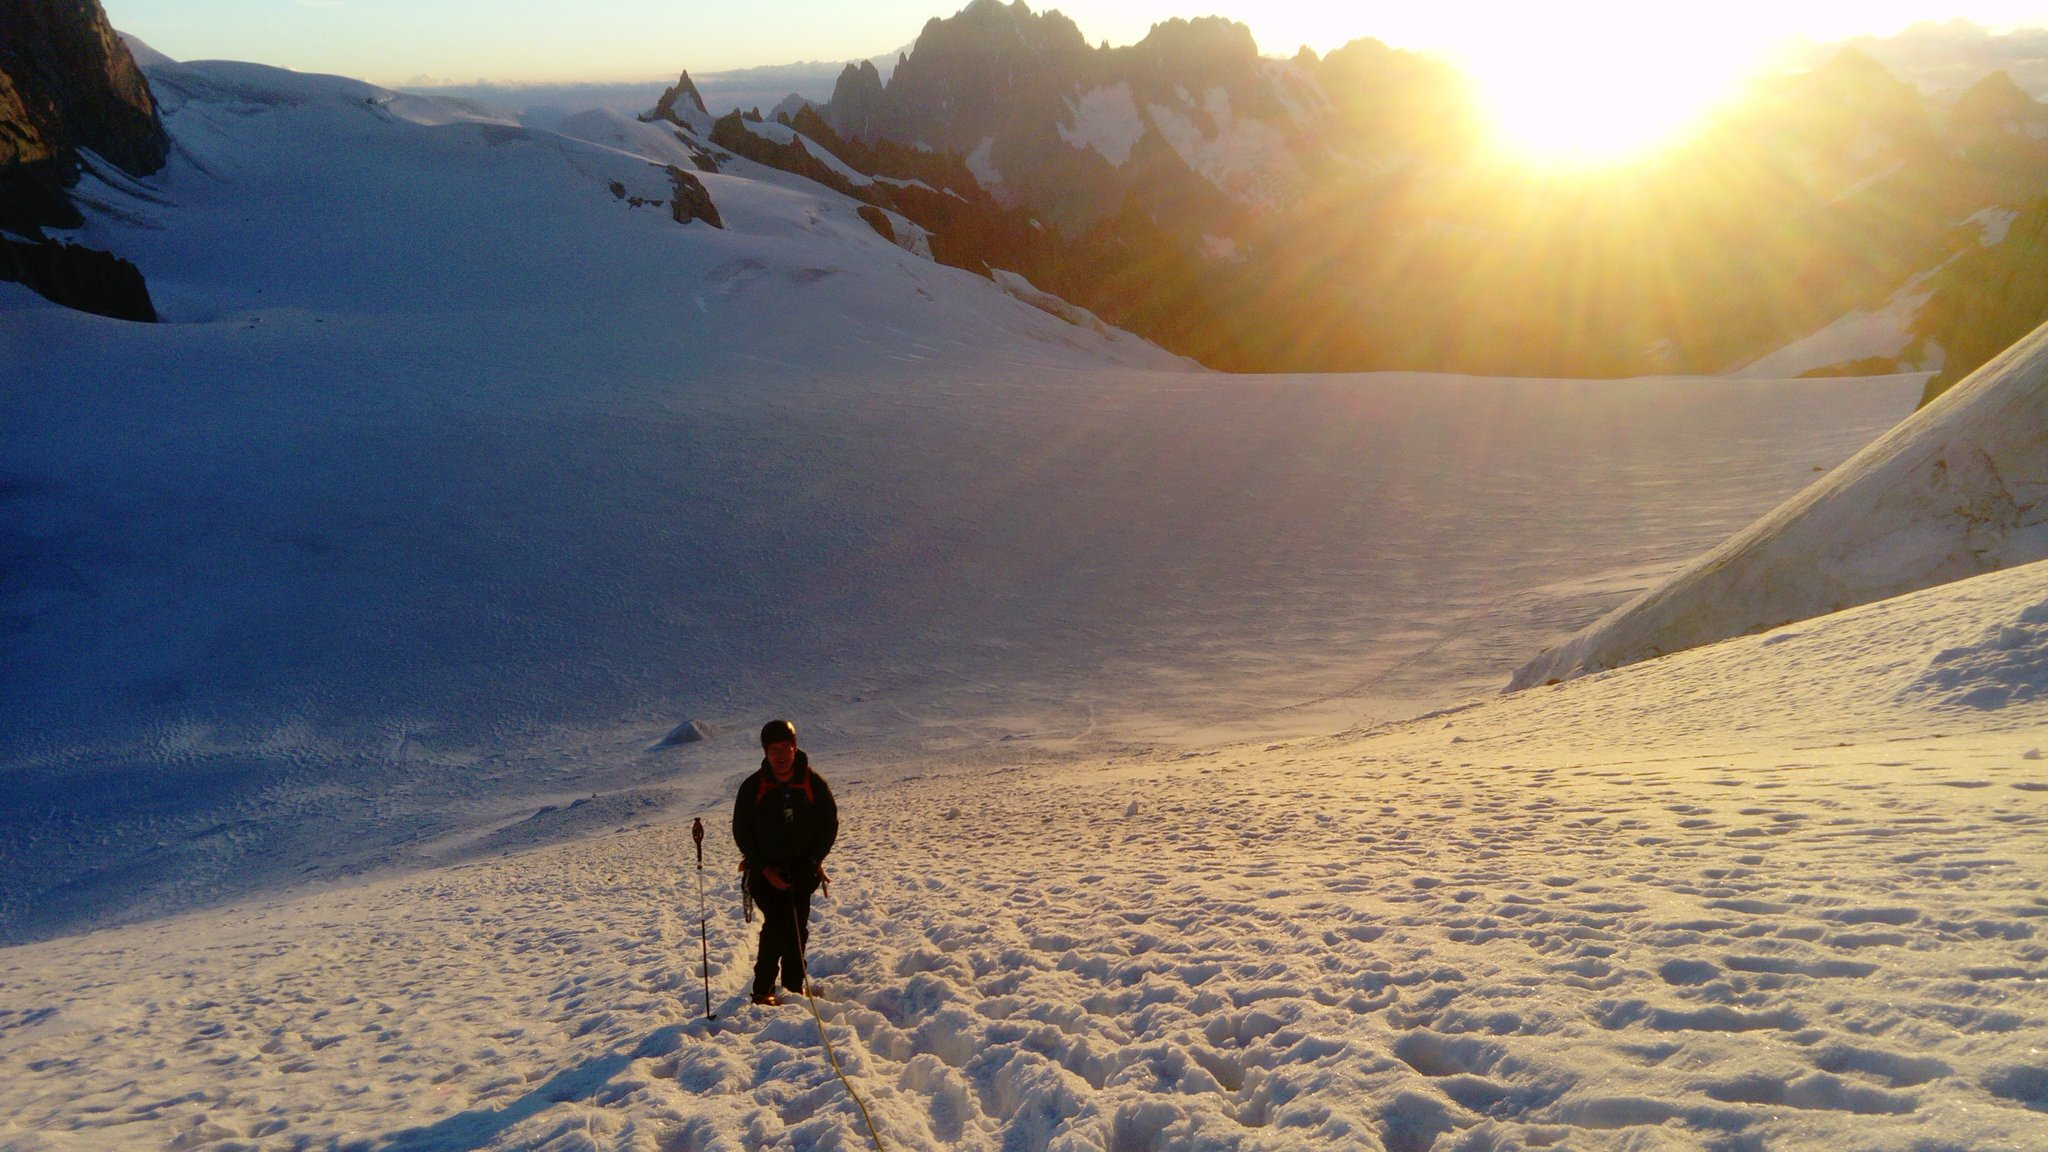 At the Col du Midi, on the way up Mont Blanc du Tacul